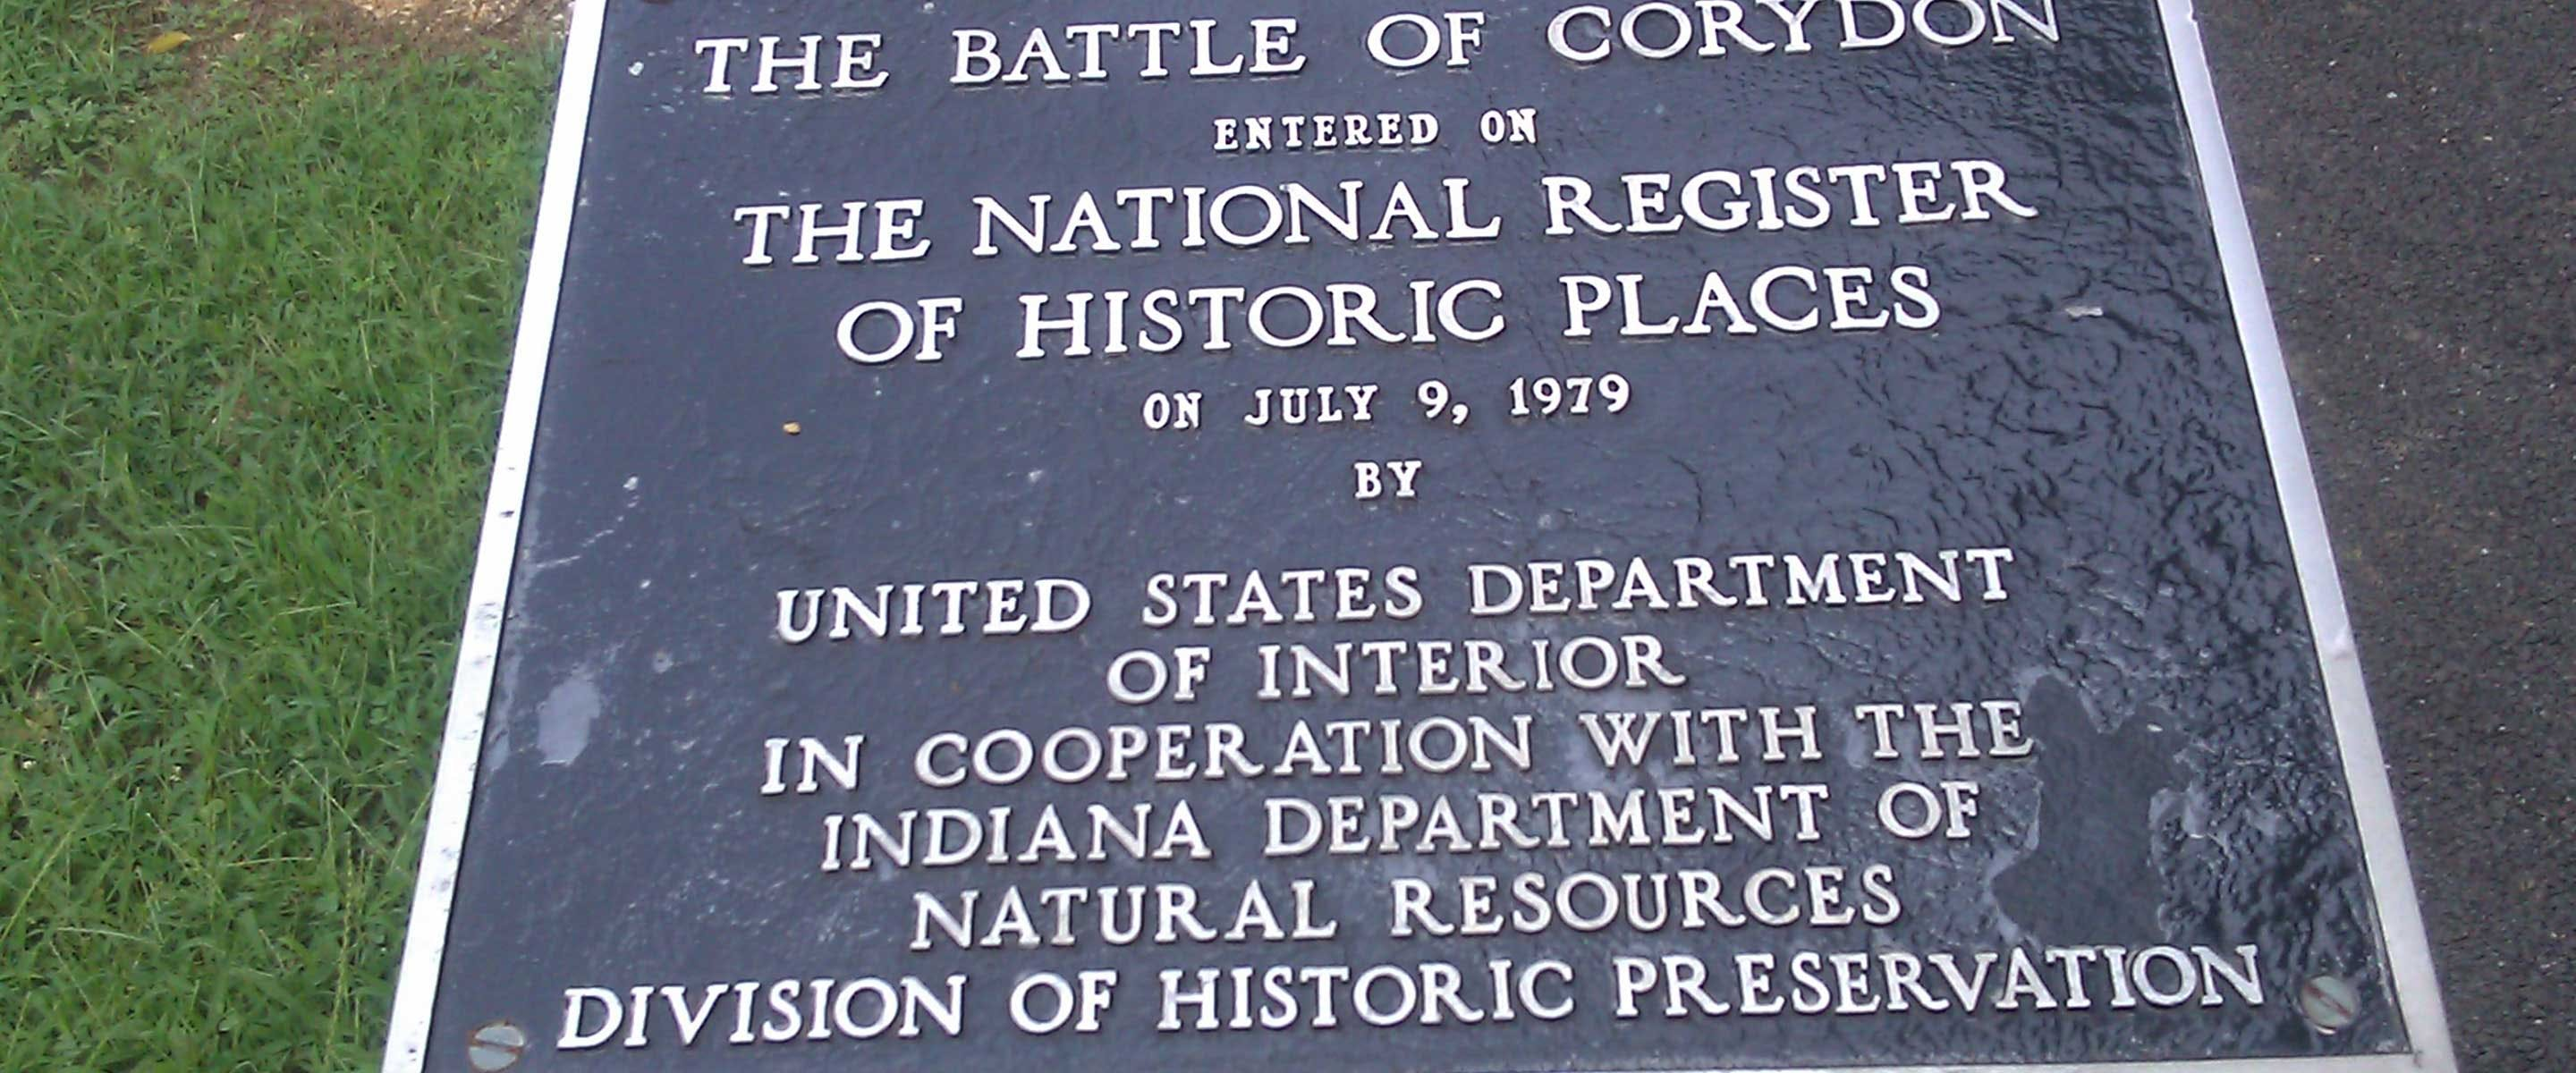 the front of the plaque at the Battle of Corydon Memorial Park